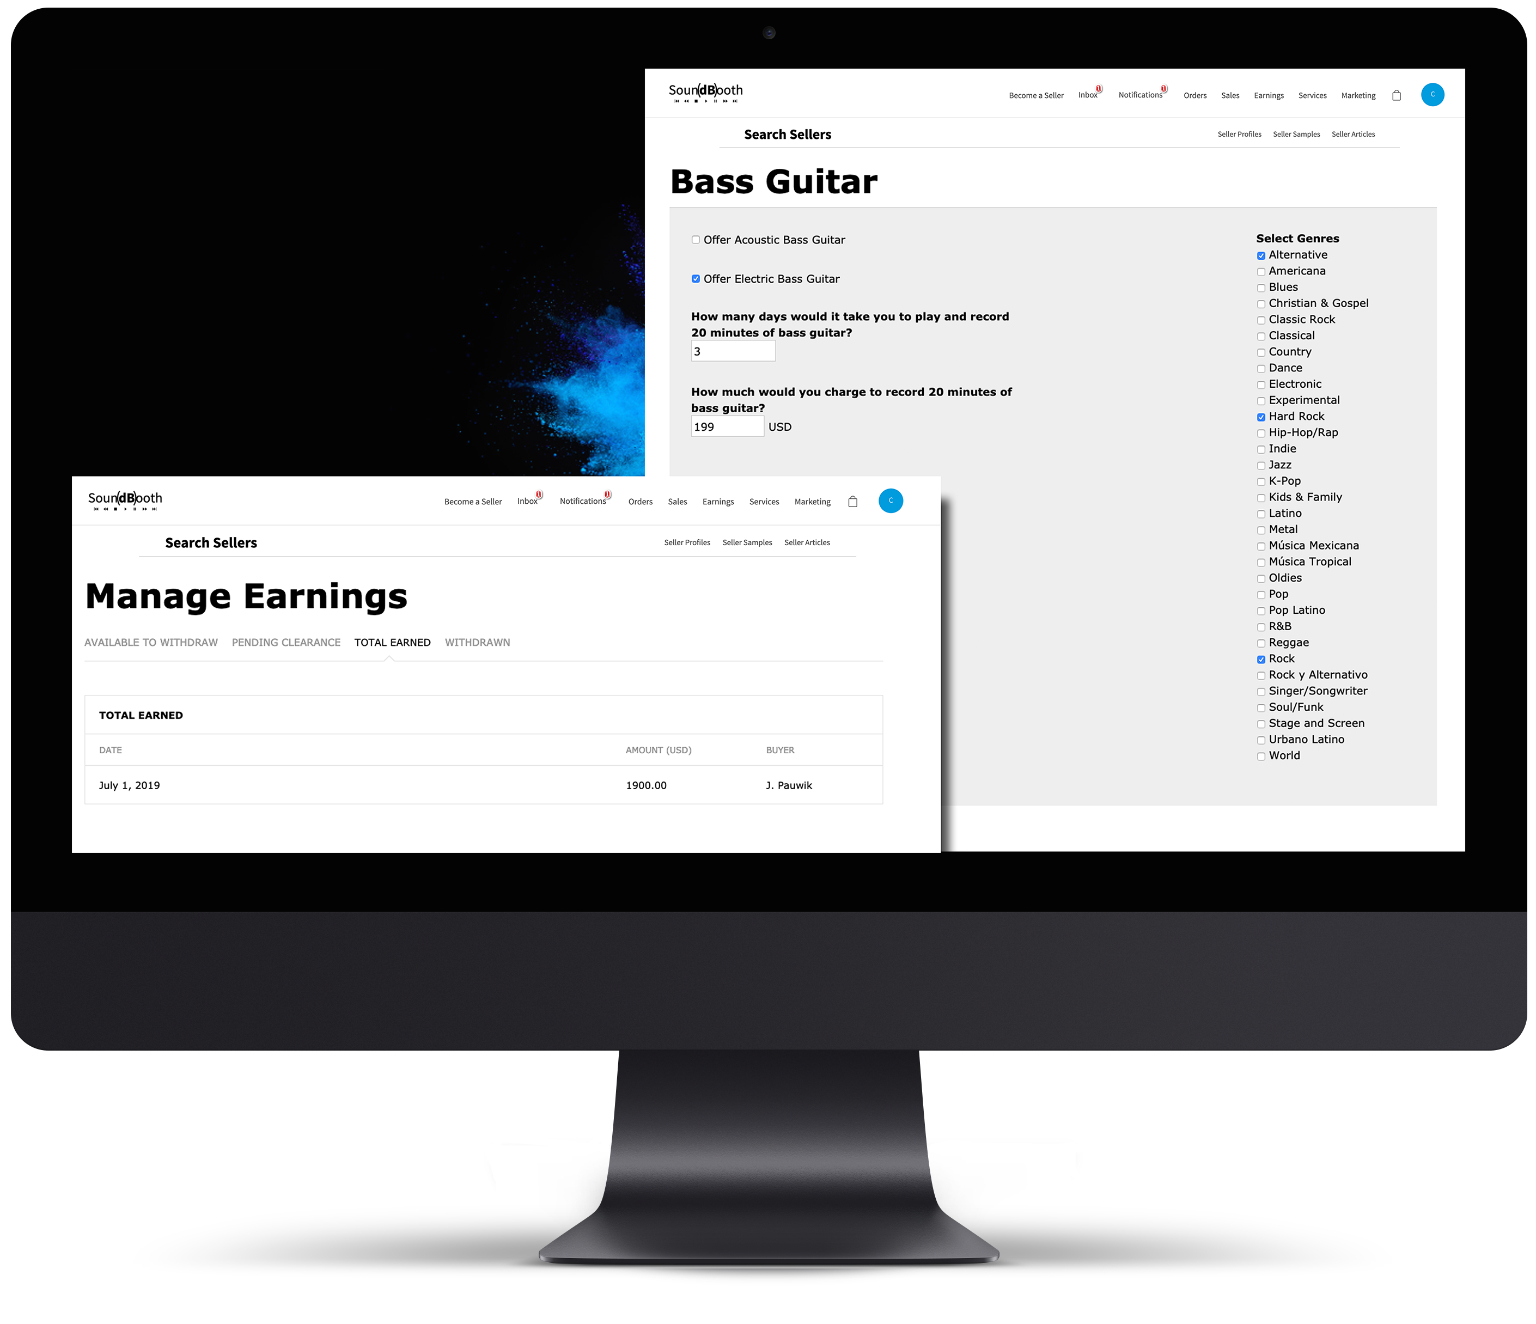 Soundbooth Manage Earnings and Manage Service Pages